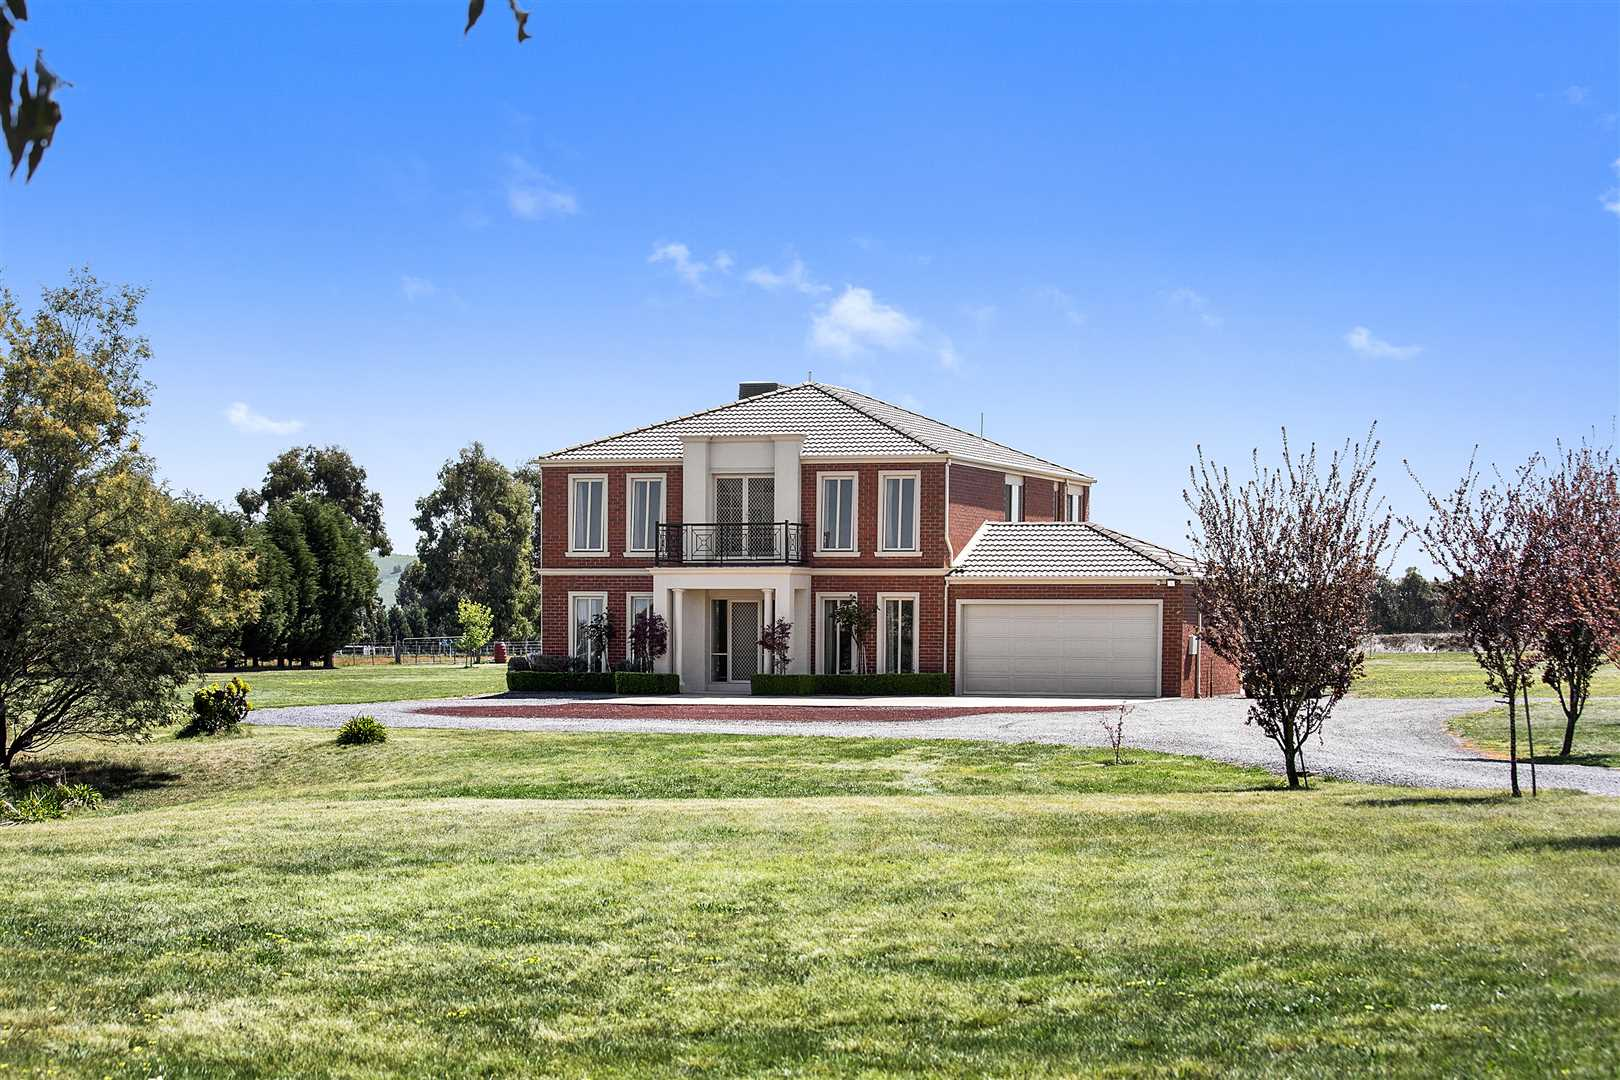 Lifestyle Living in Desired Mount Rowan - Approx. 5 Acres